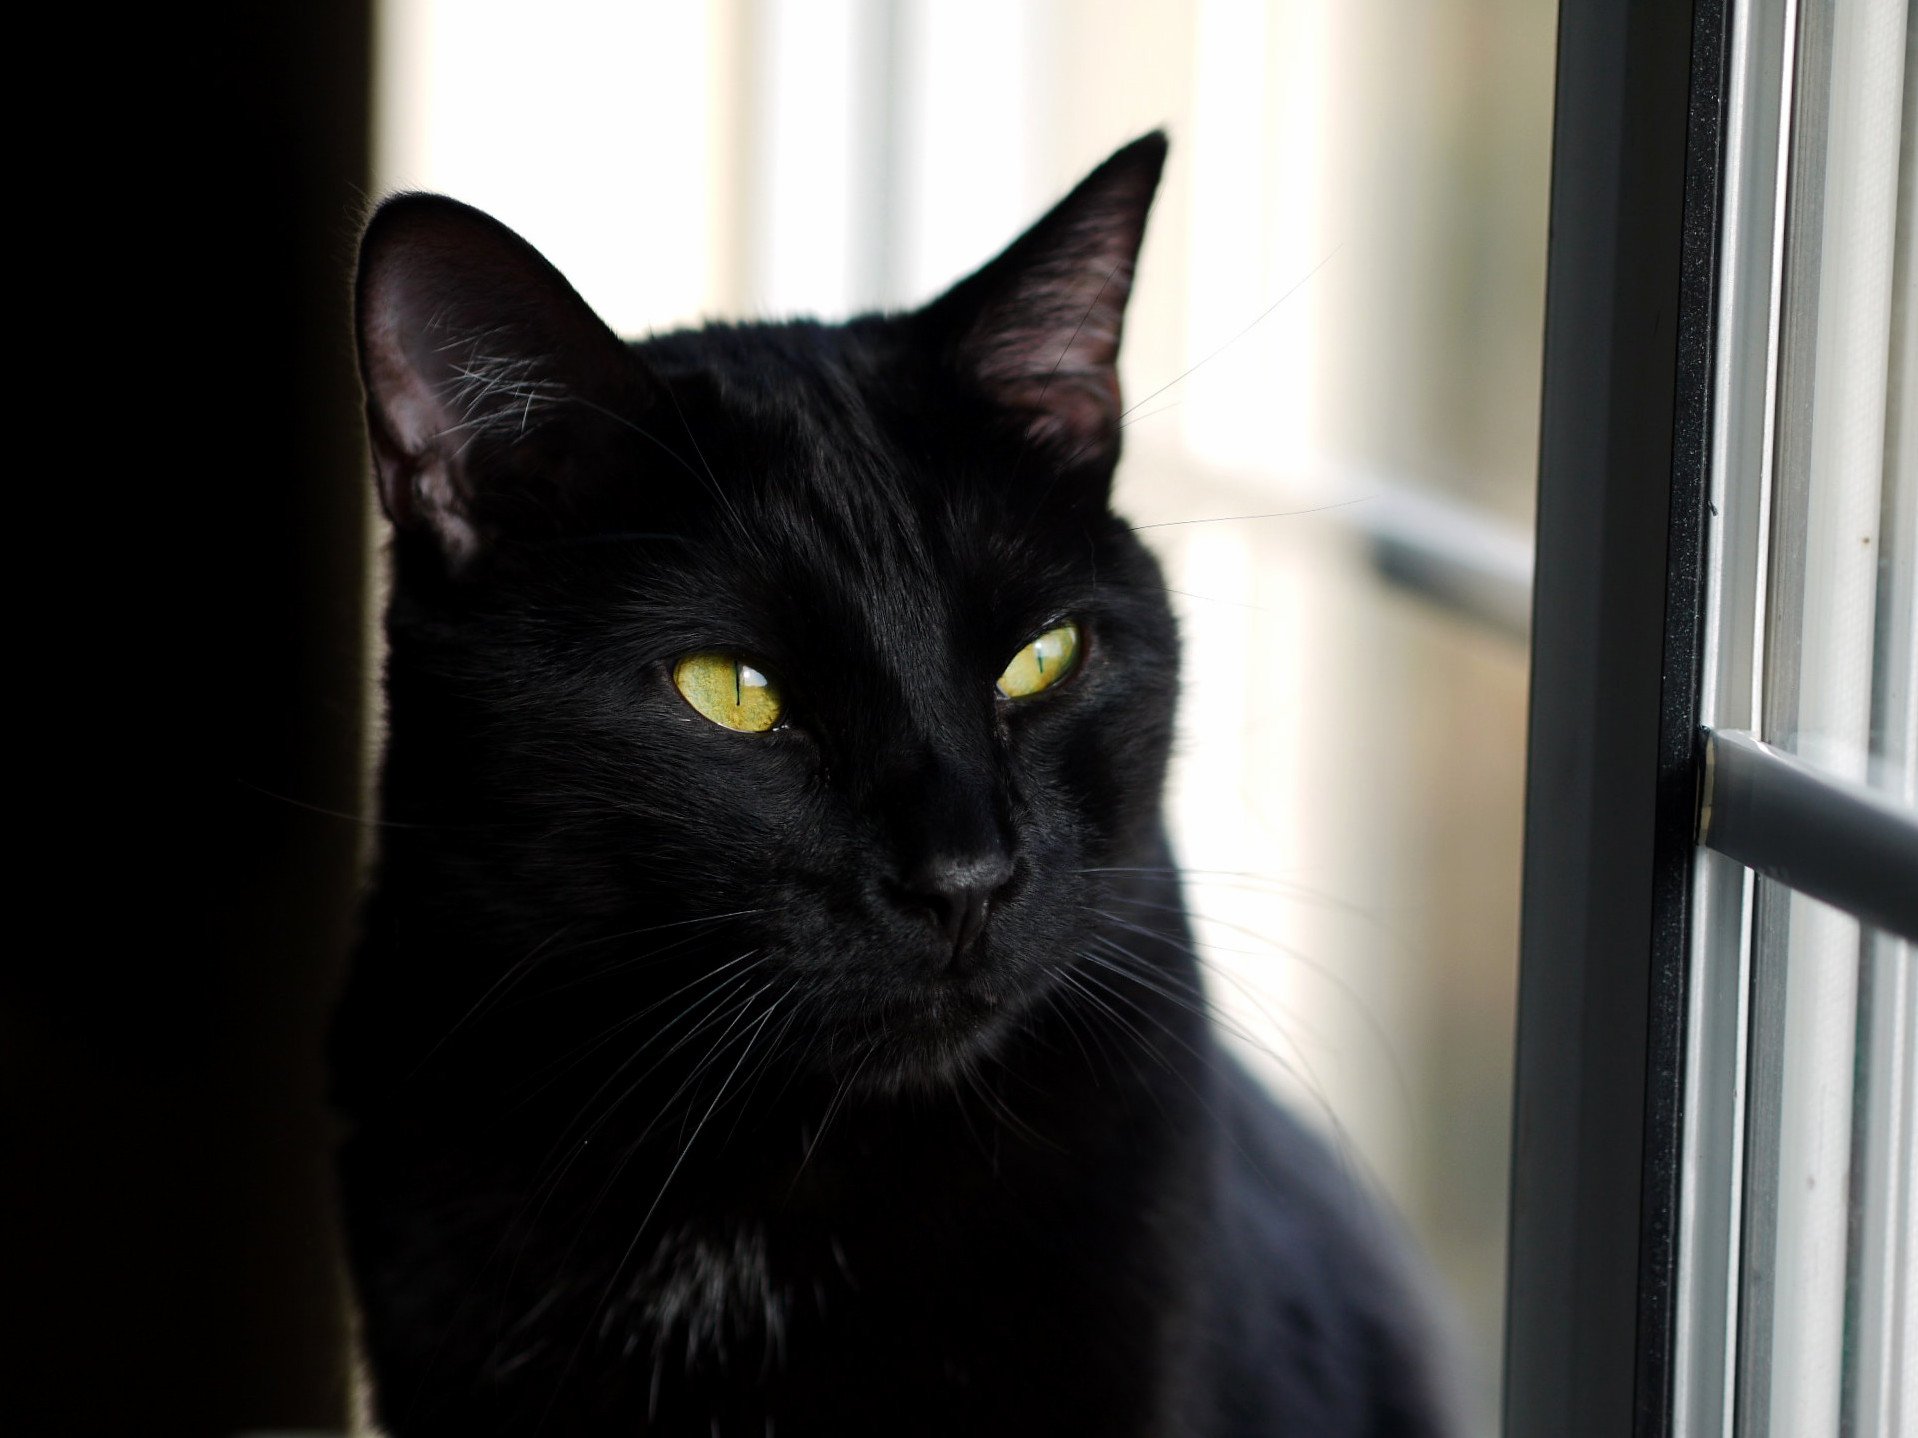 Panther near a window. album in comments